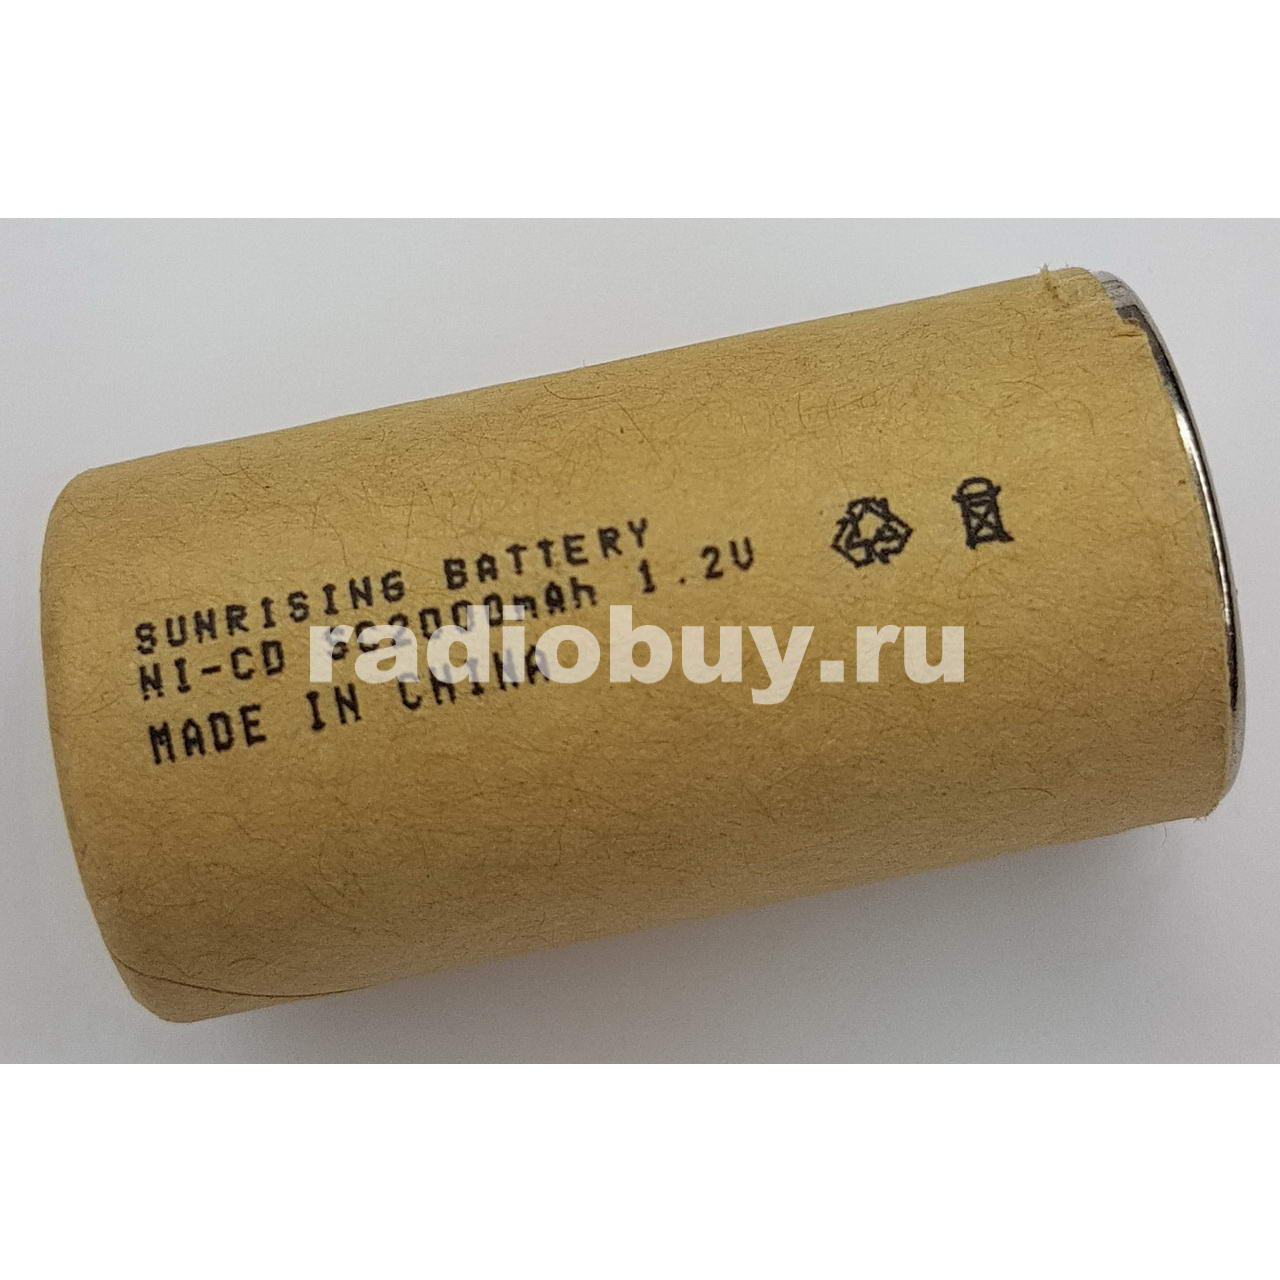 Аккумулятор Sunrising Ni-Cd SC, 2000mAh, (10C)